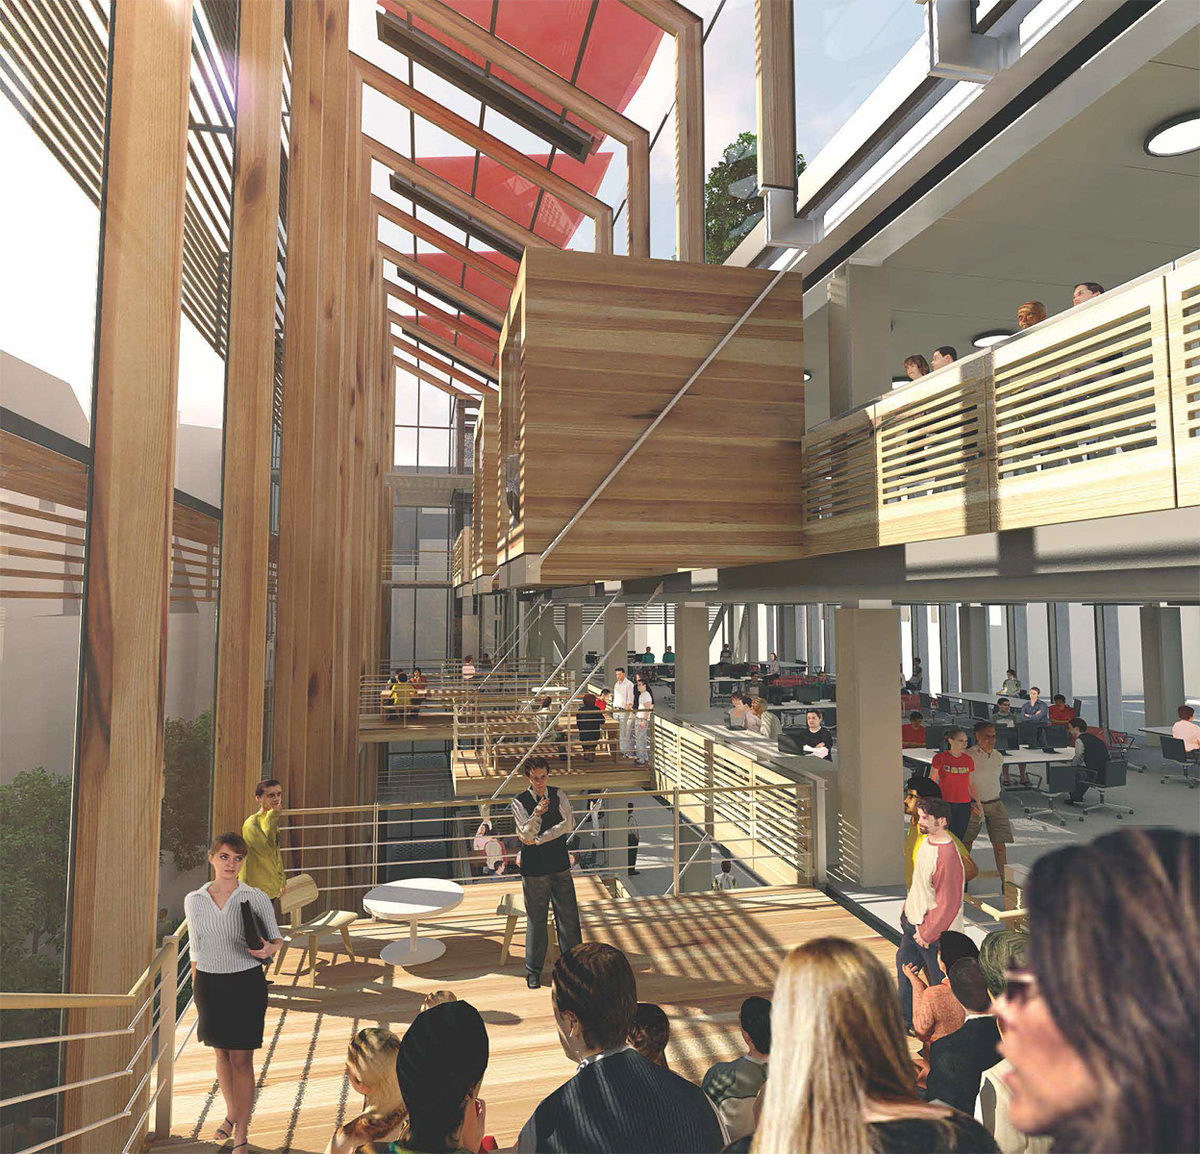 Collaboration and study spaces within the atrium.